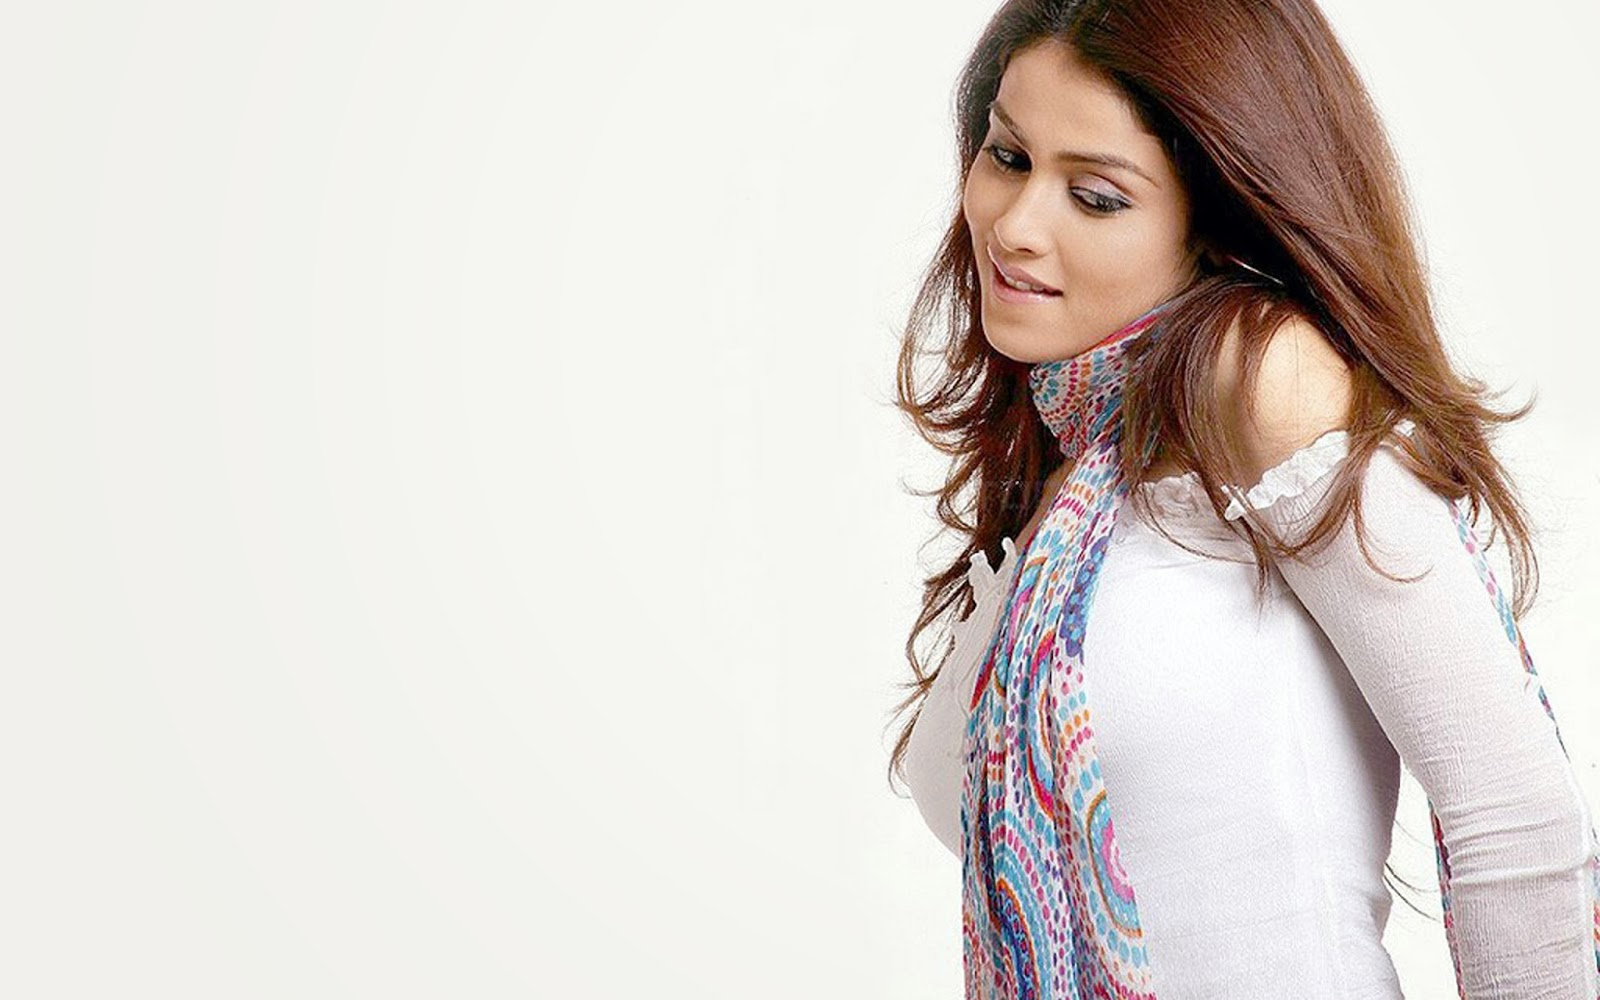 GENELIA D'SOUZA_WALLSTOWN_IN_BOLLYWOOD ACTRESS